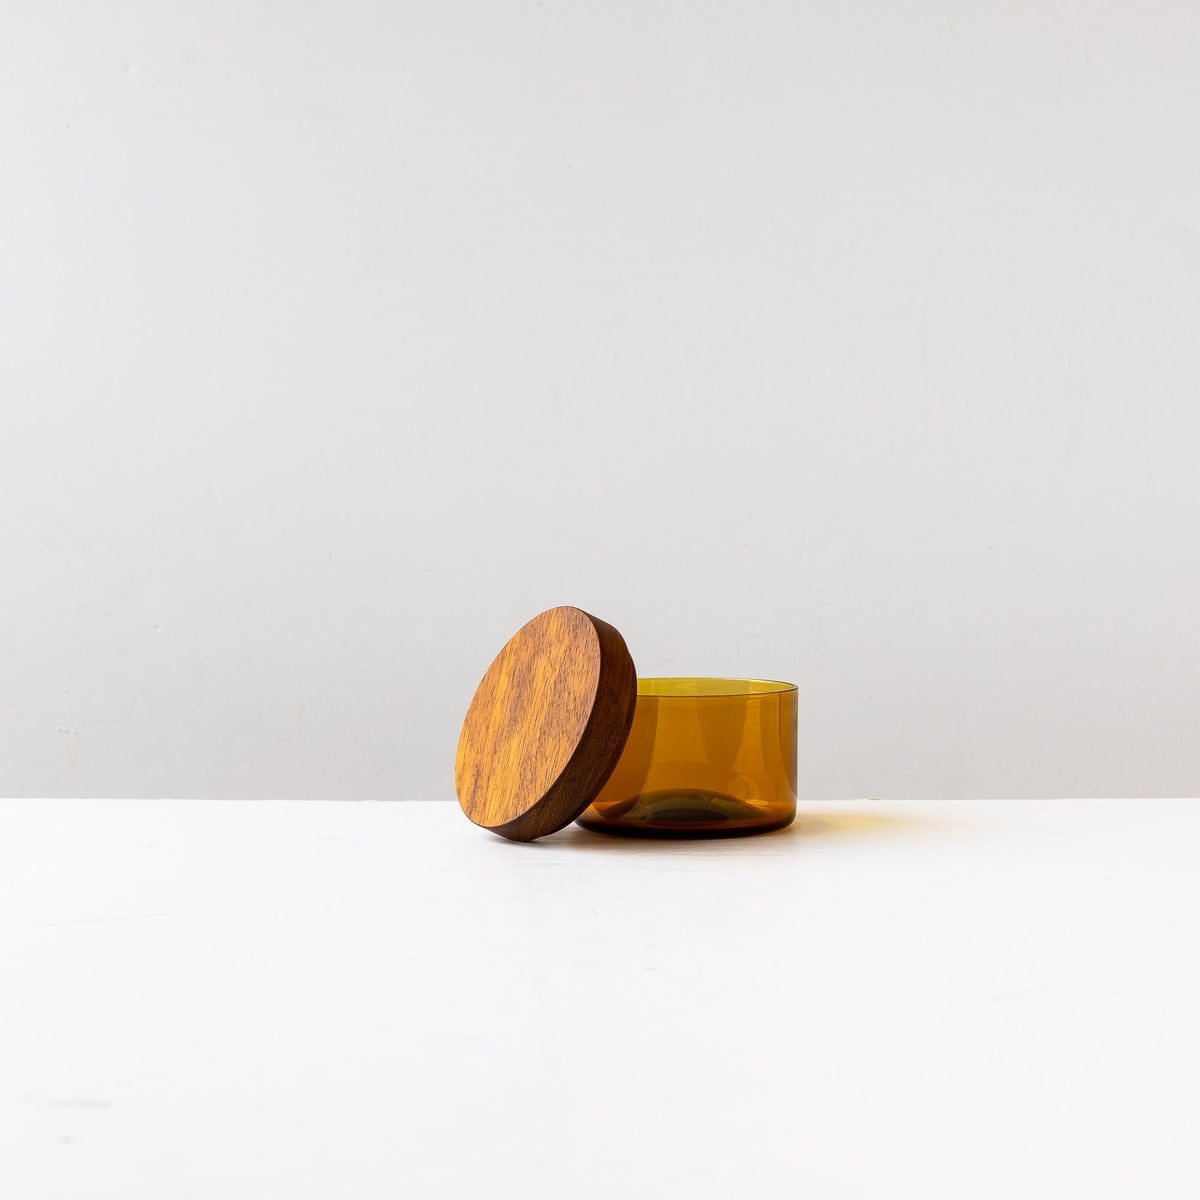 Cover Detail - Amber Hand-blown Salt Cellar With Black Walnut Cover - Sold by Chic & Basta